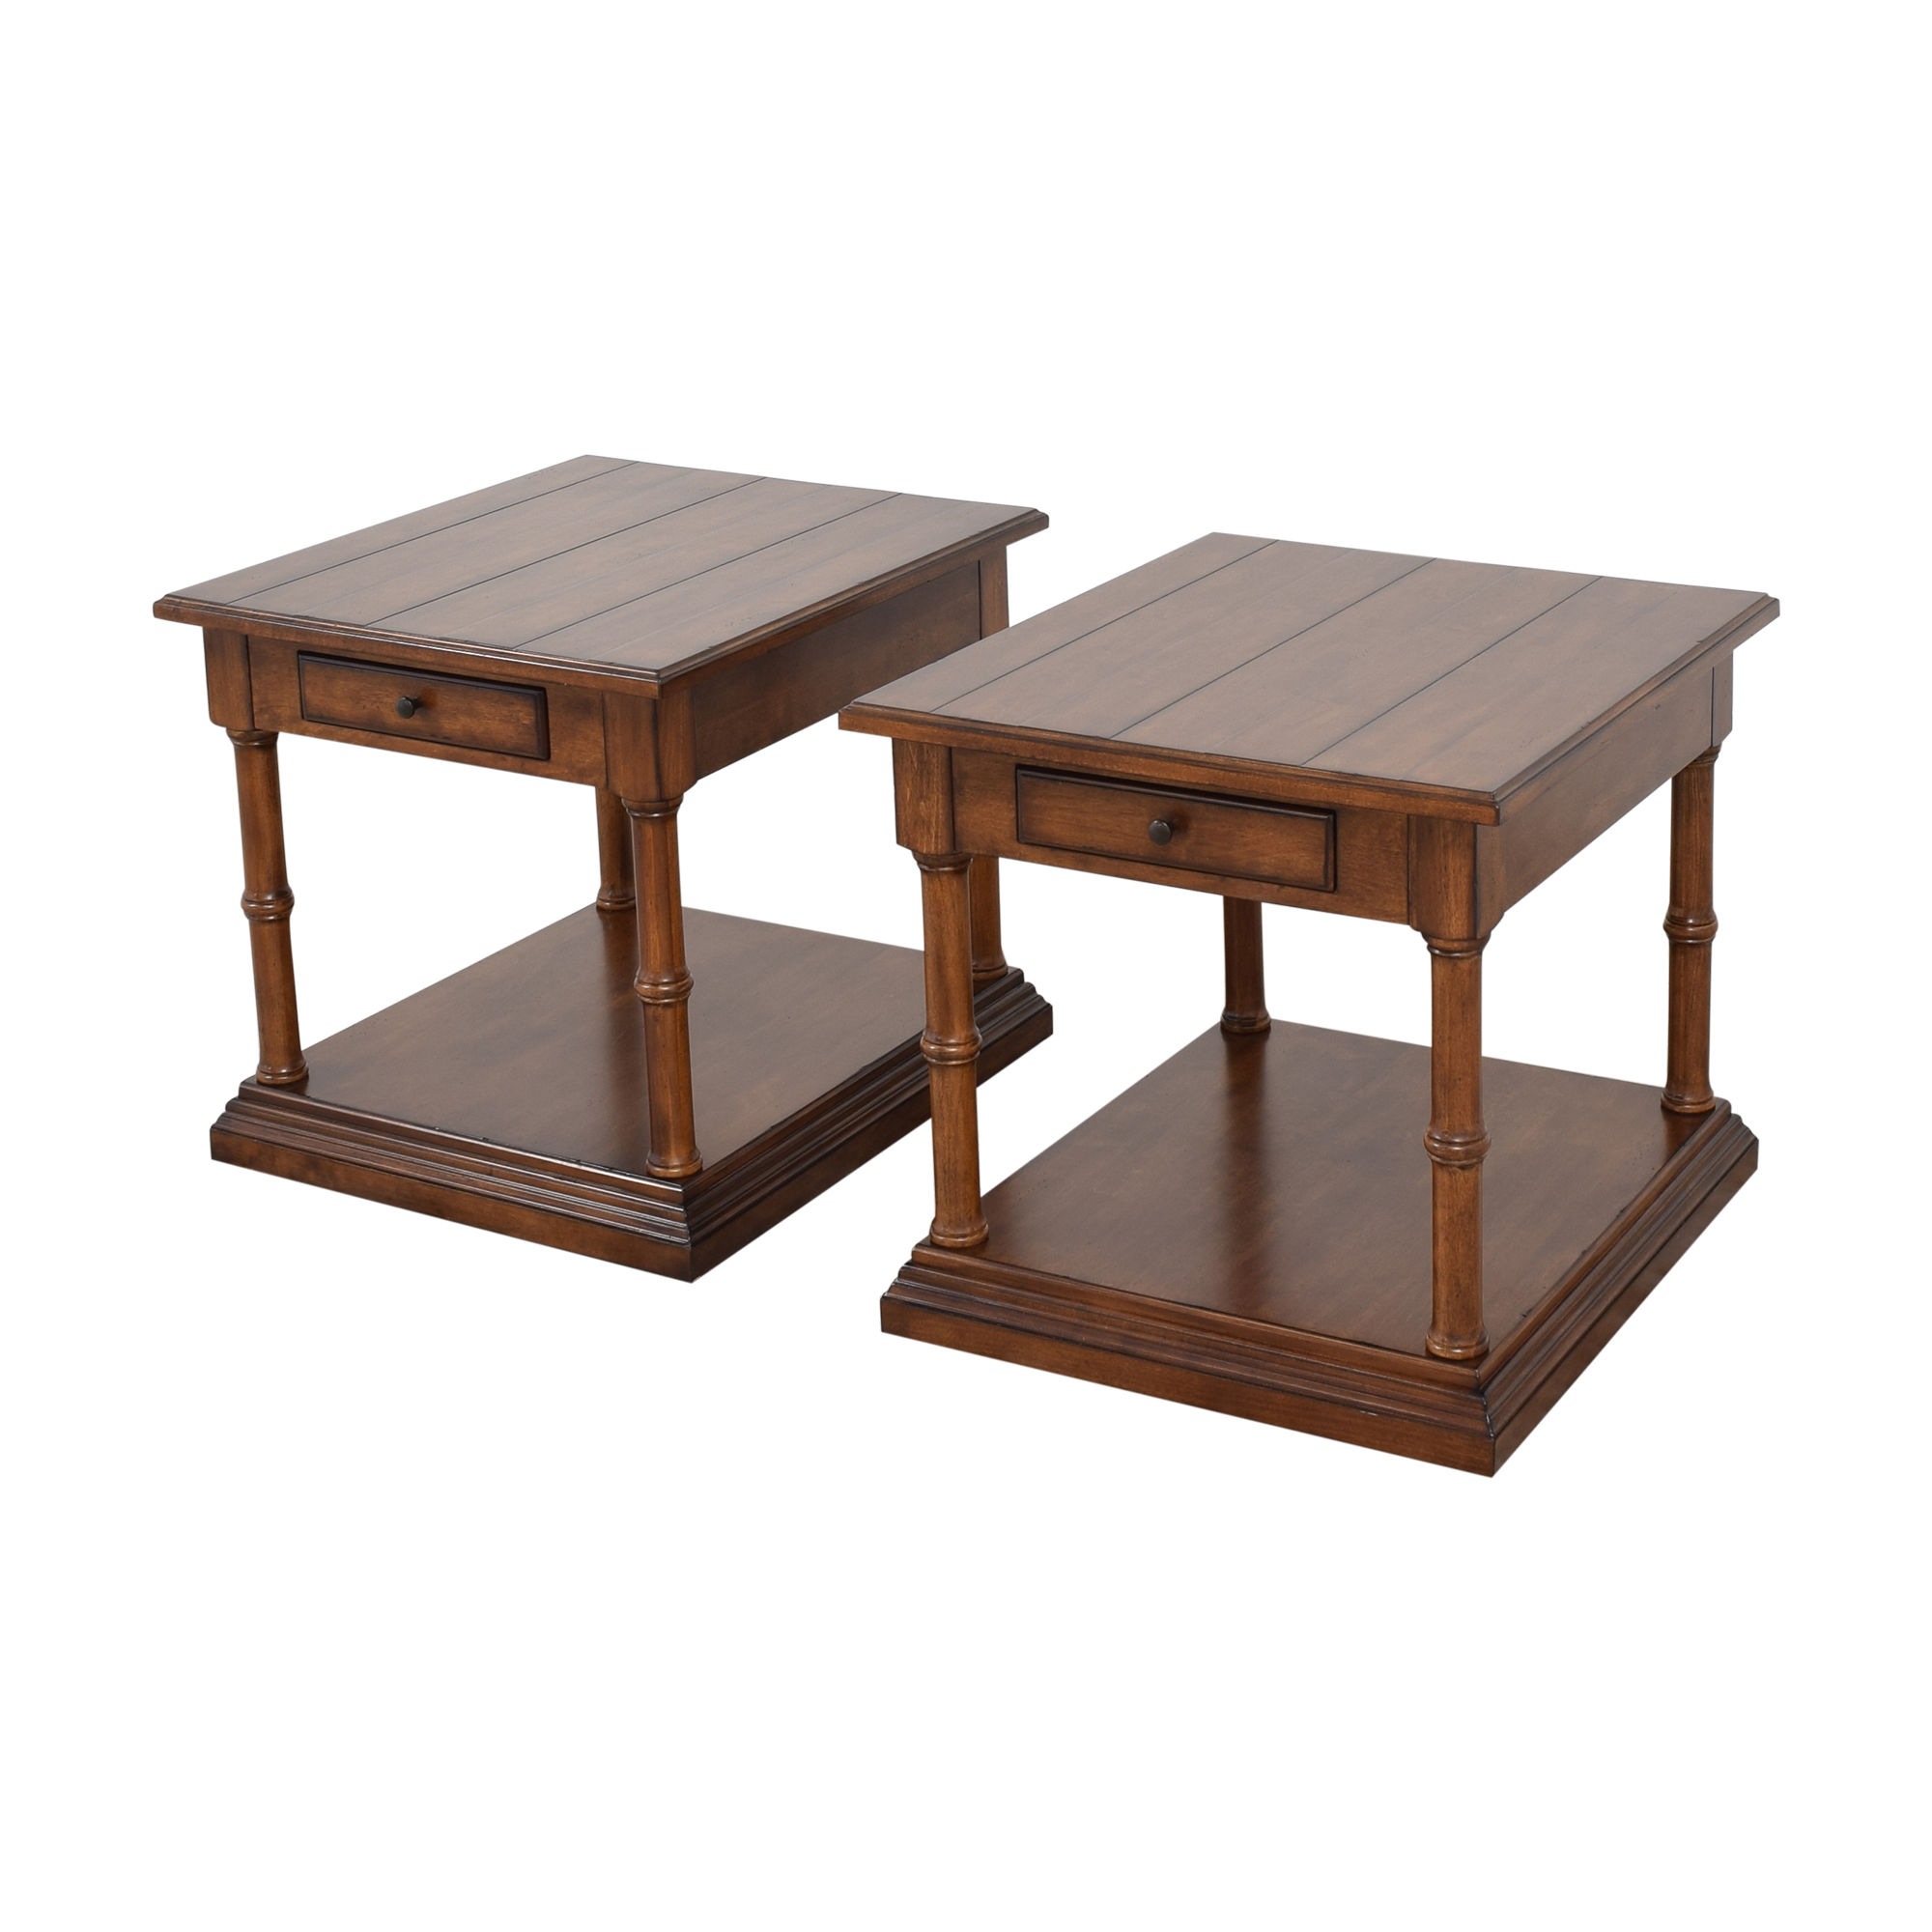 Thomasville Thomasville Two Tier End Tables ct